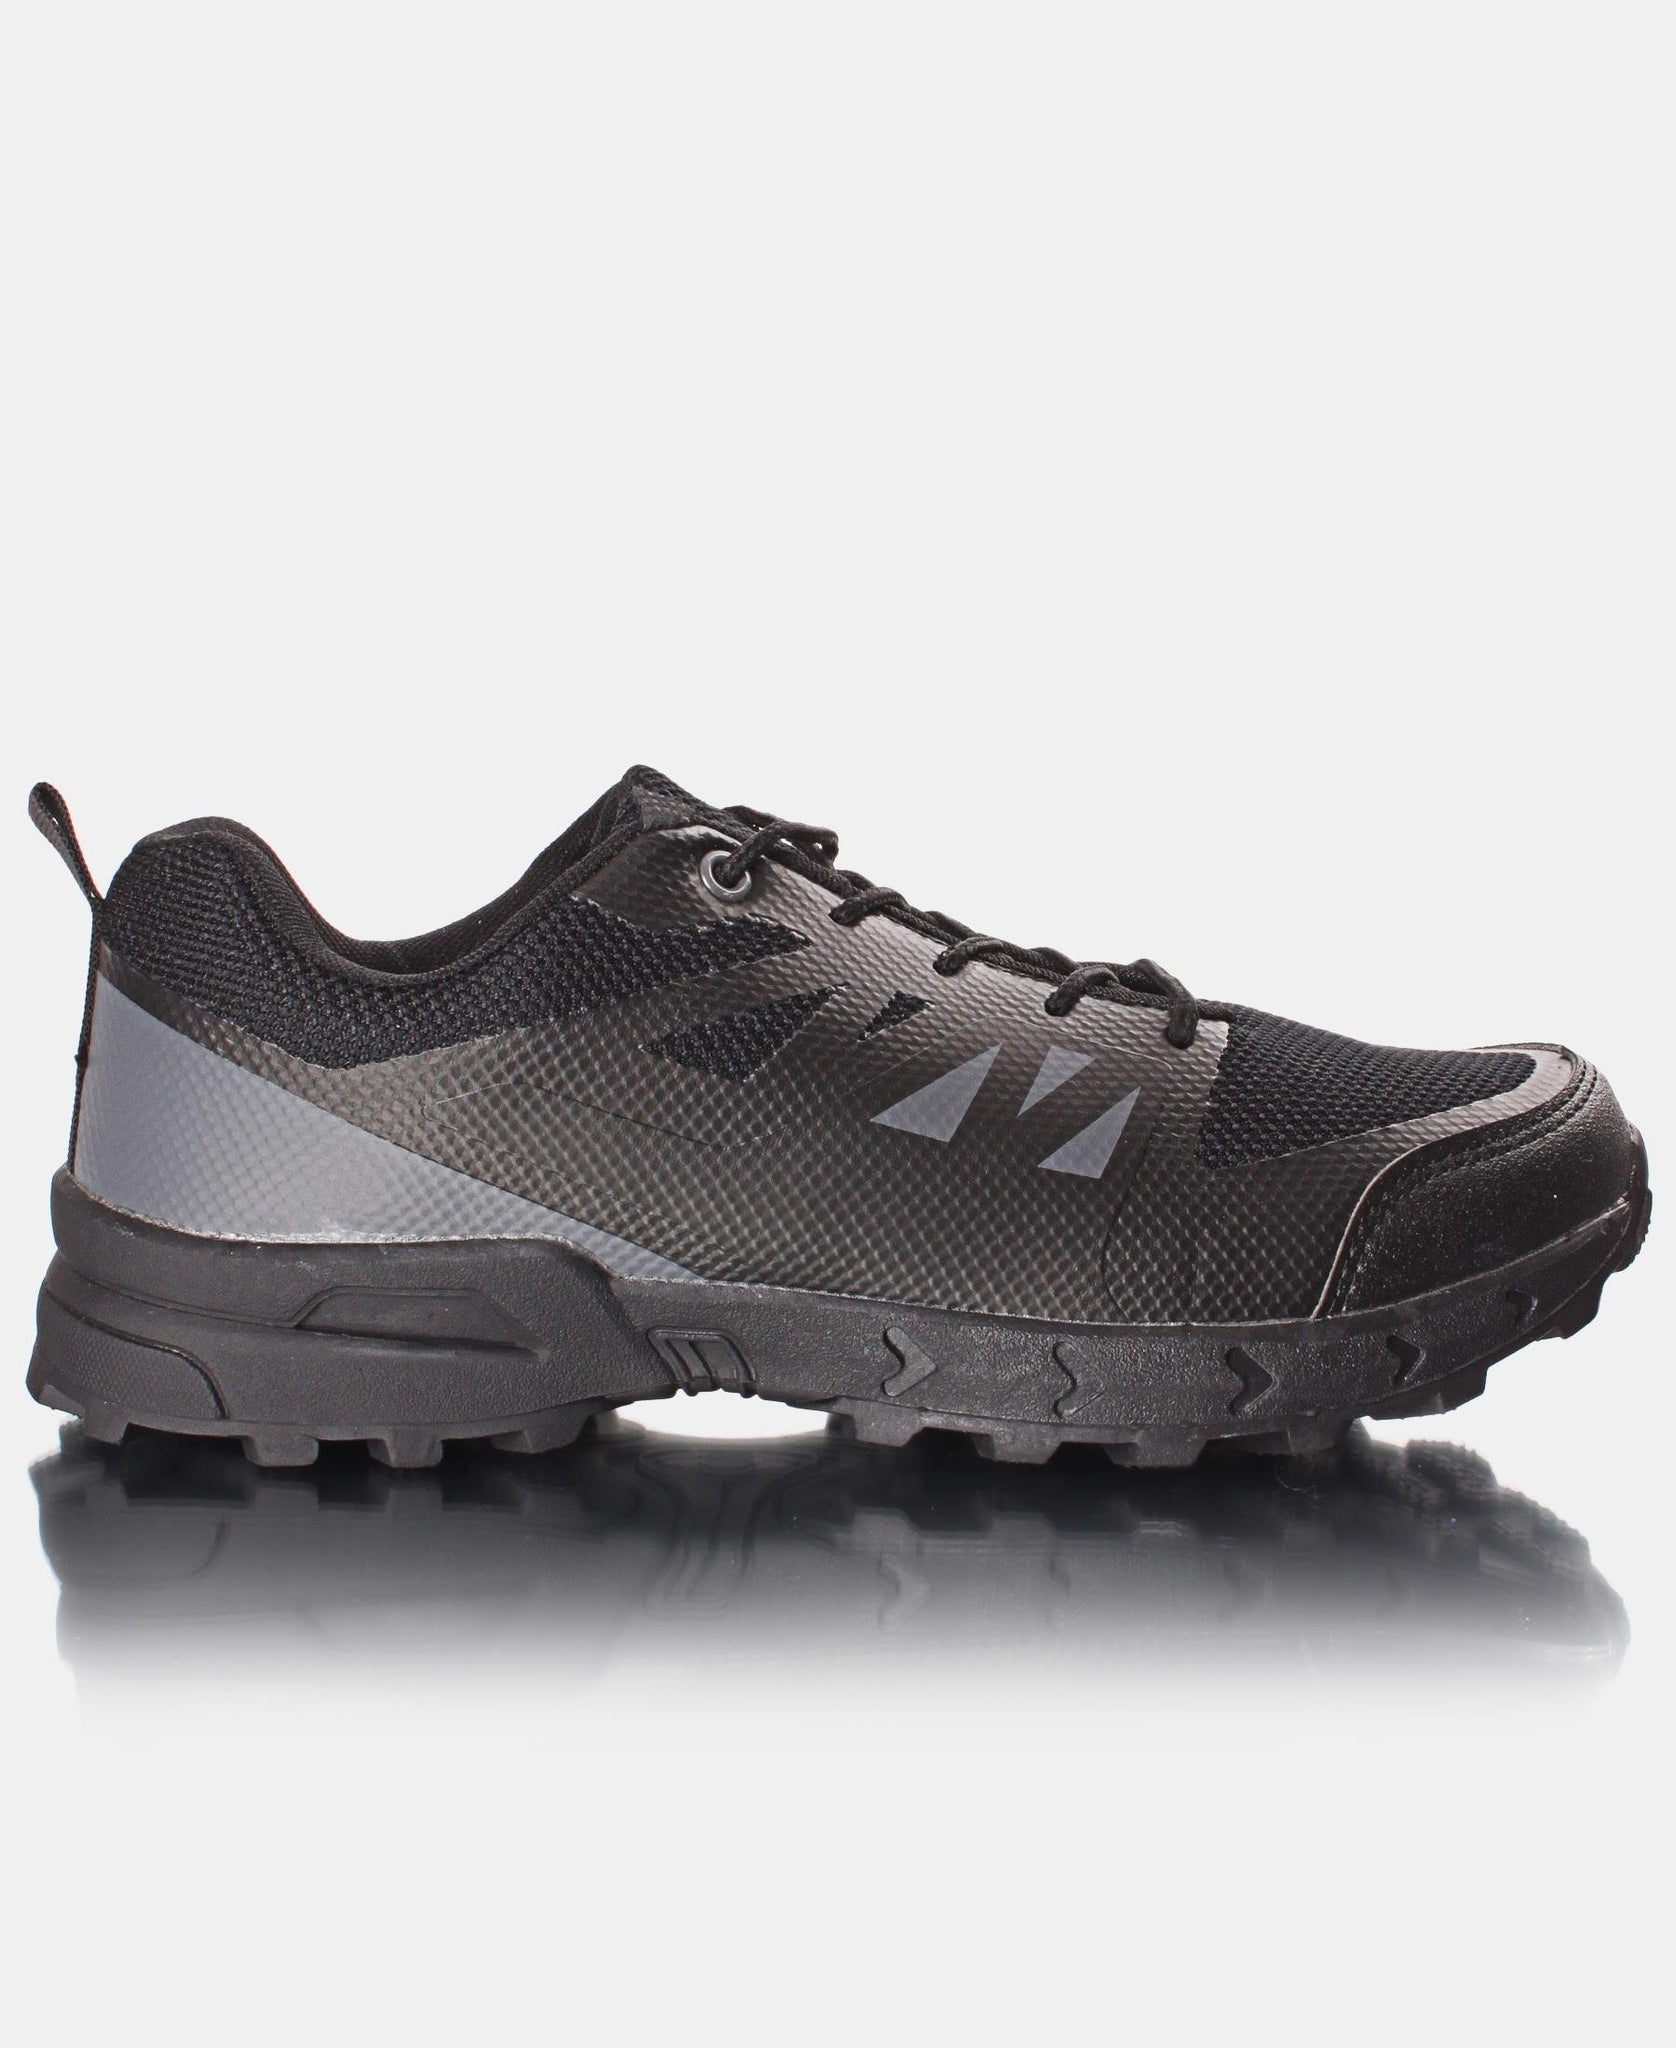 Men's Hiker Mono Sneakers - Black